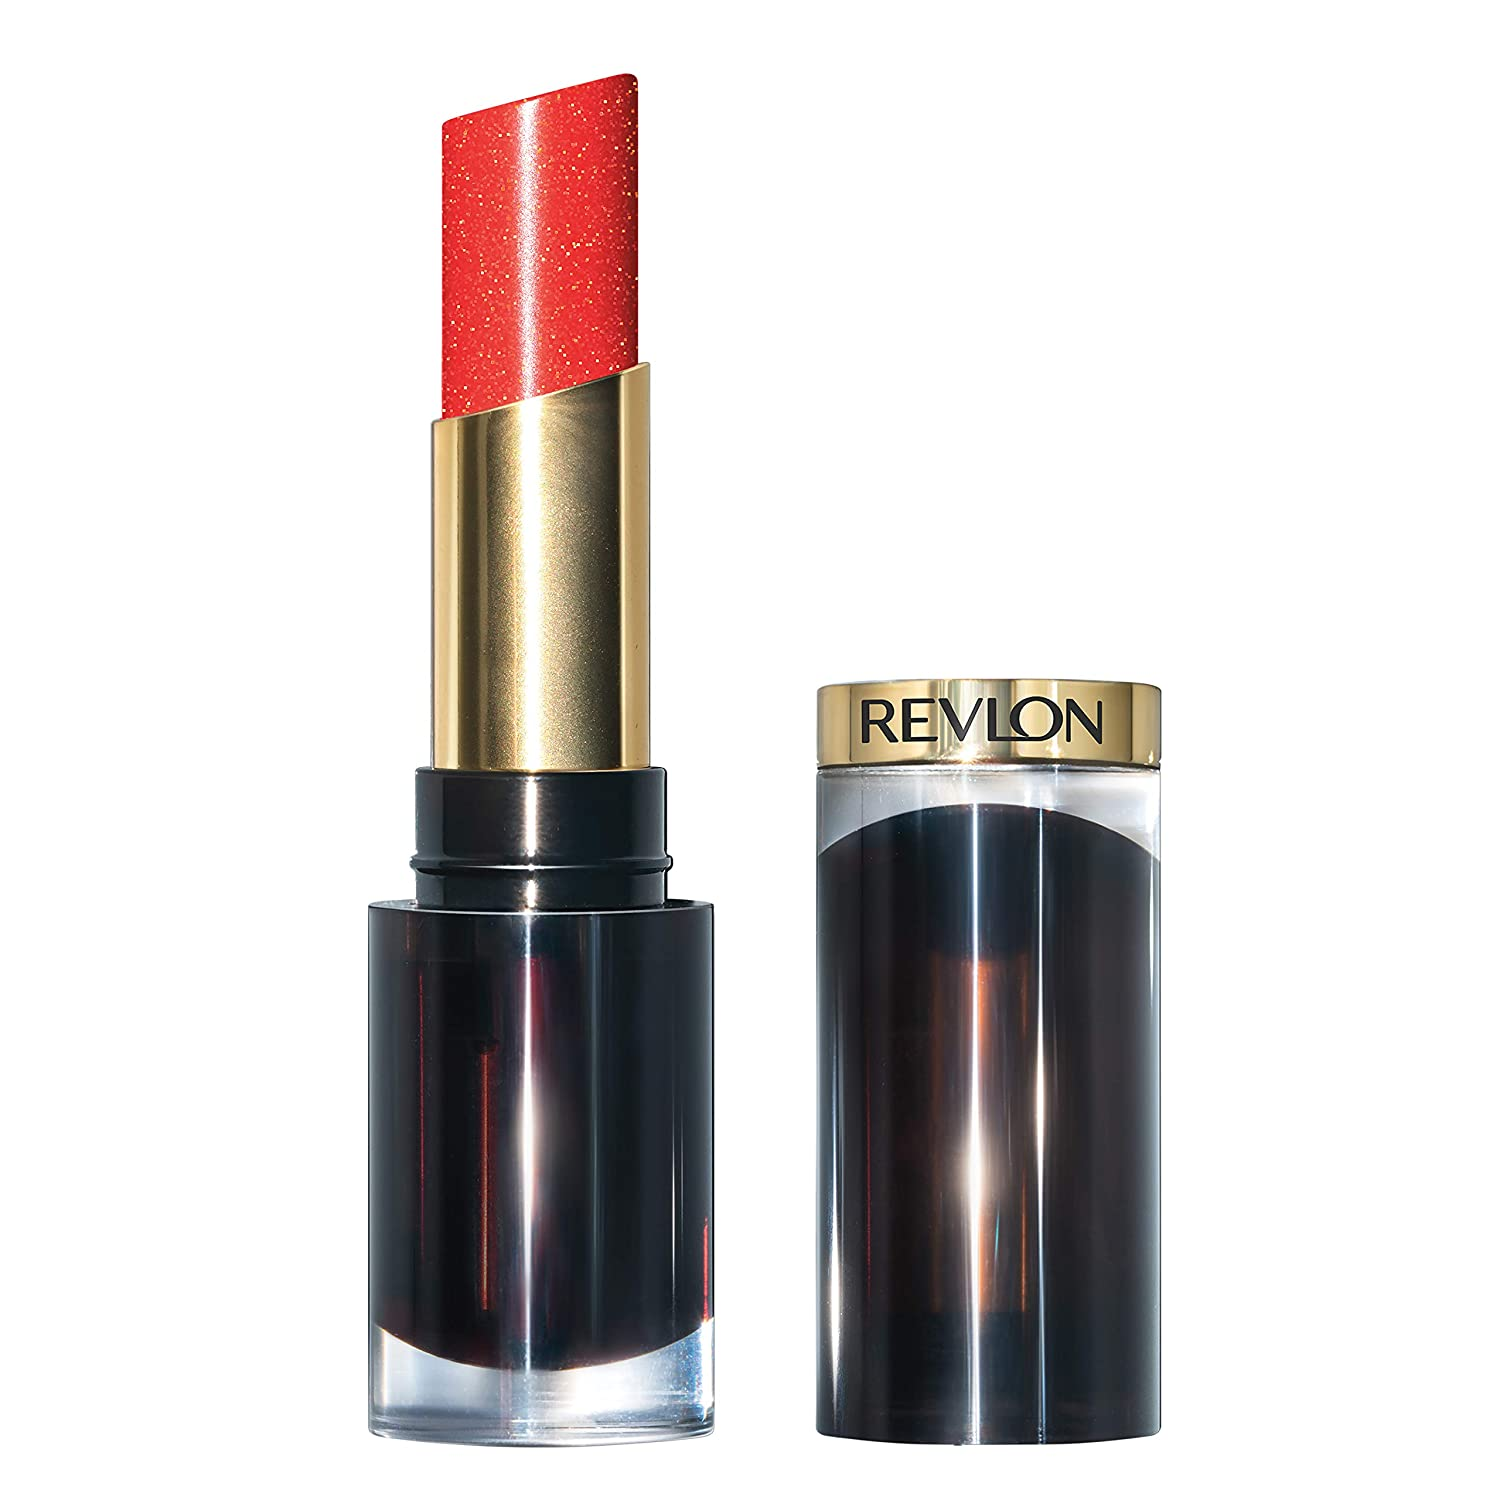 Revlon Super Lustrous Glass Shine Lipstick, Moisturizing Lipstick with Aloe and Rose Quartz in Red, 023 Glaring Red, 0.15 oz